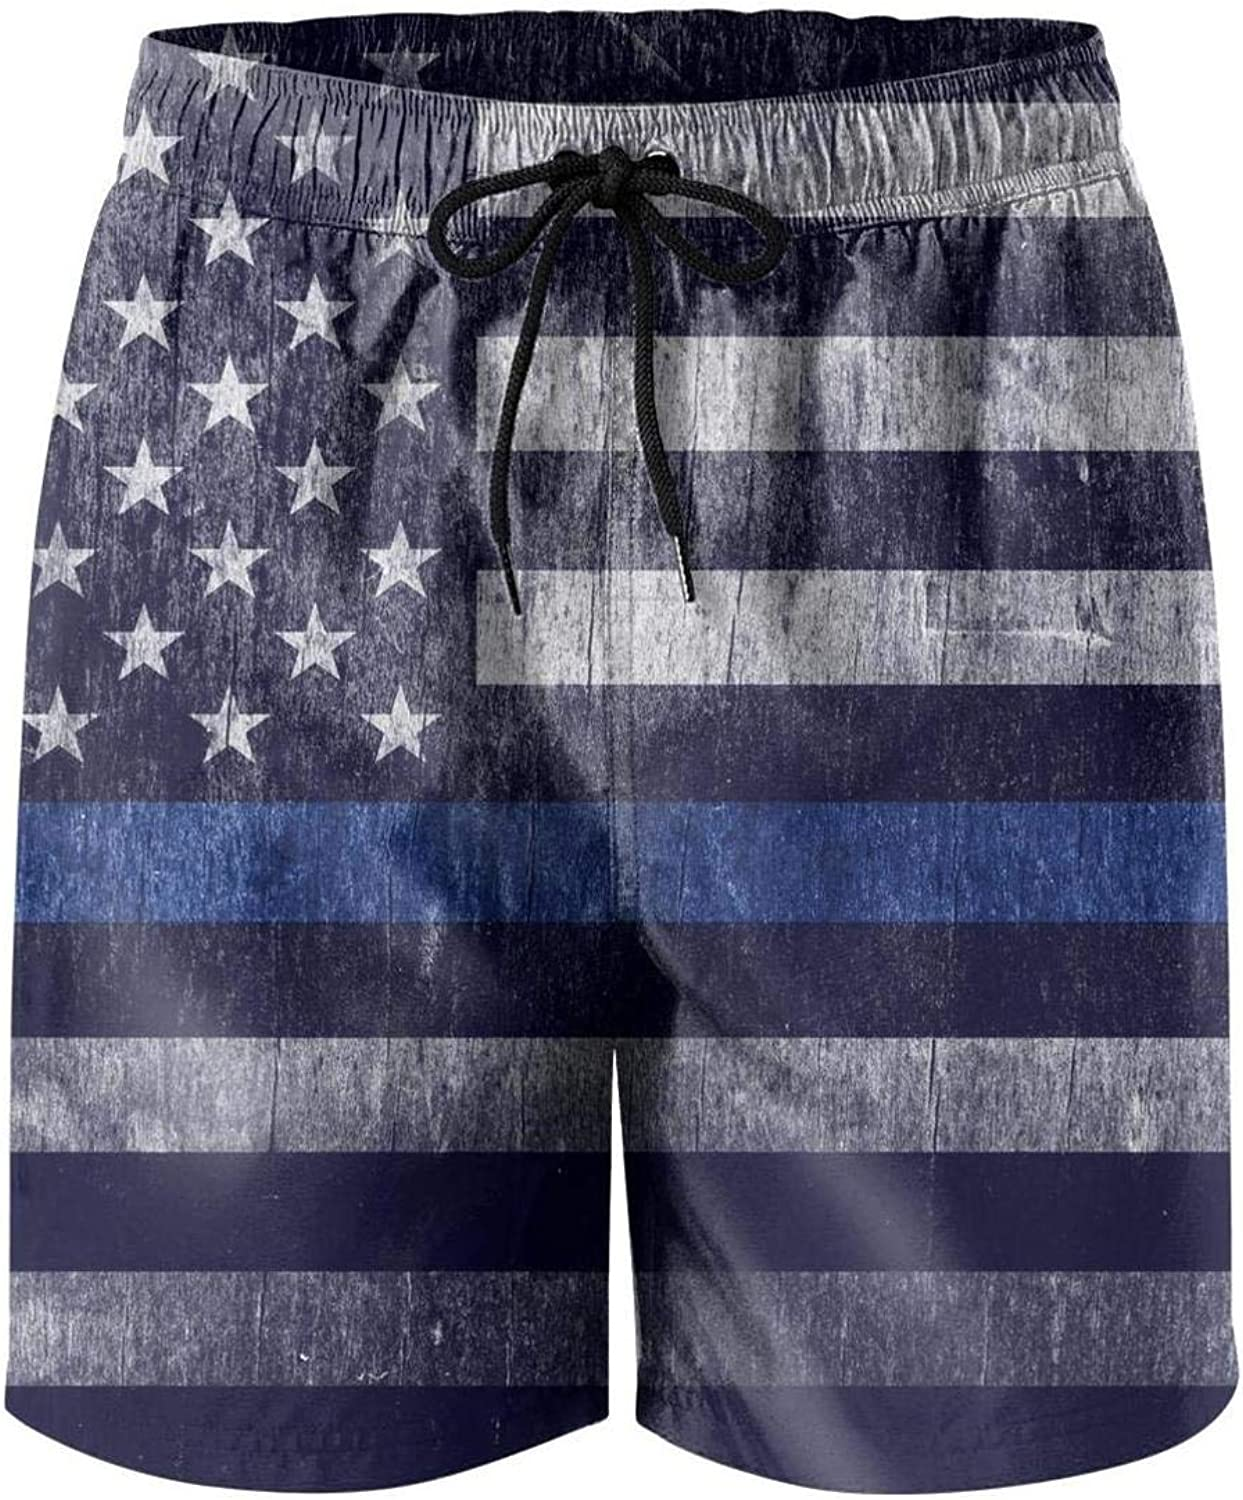 Quick-Dry Mens Beach Shorts Grunge American Flag of USA Swim Trunks with Adjustable Drawstring